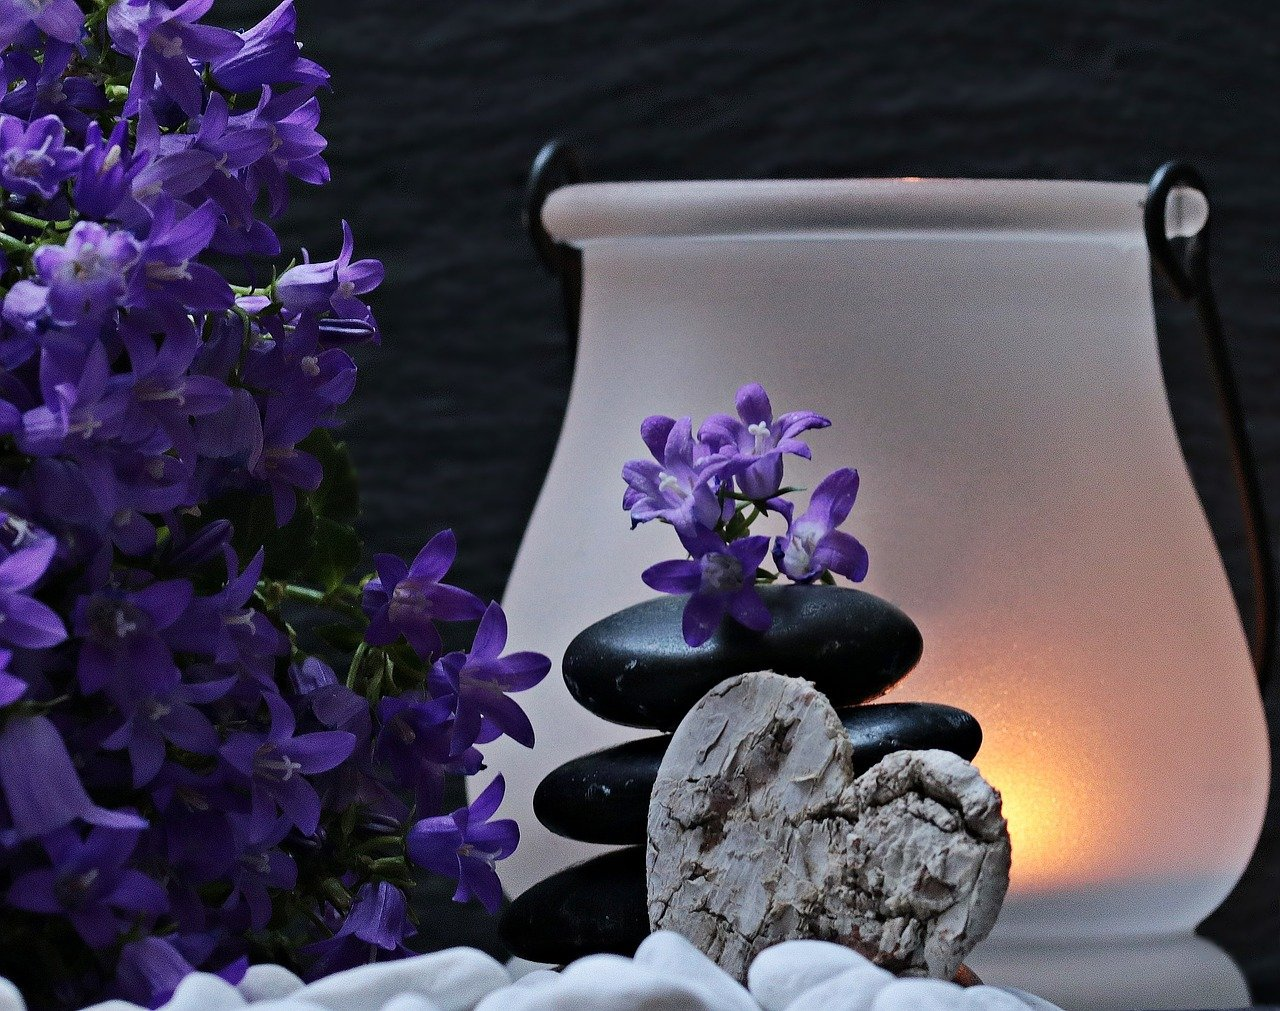 mindfulness - daily recovery support calls - cptsd foundation